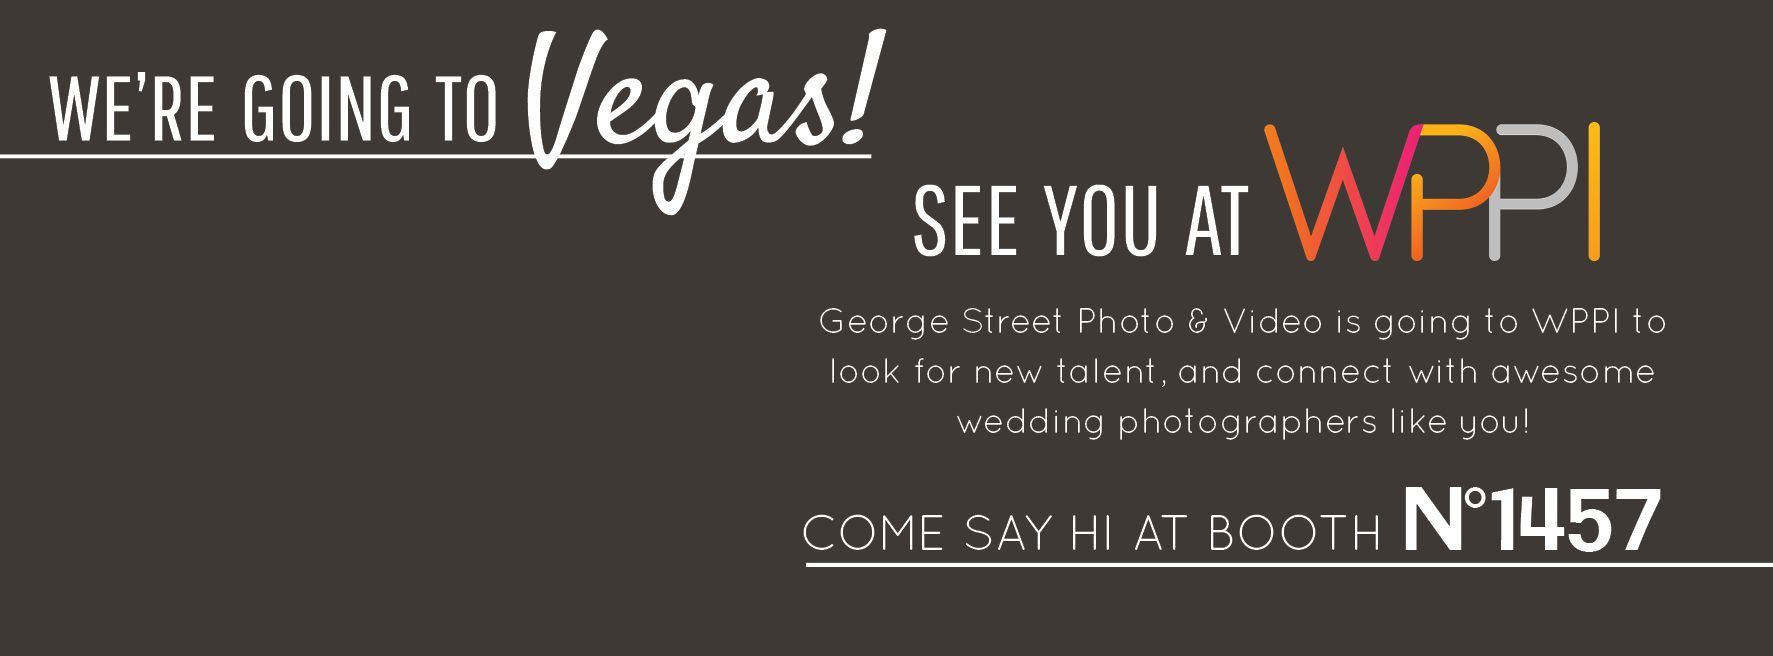 Street Photo & Video is going to Vegas for WPPI